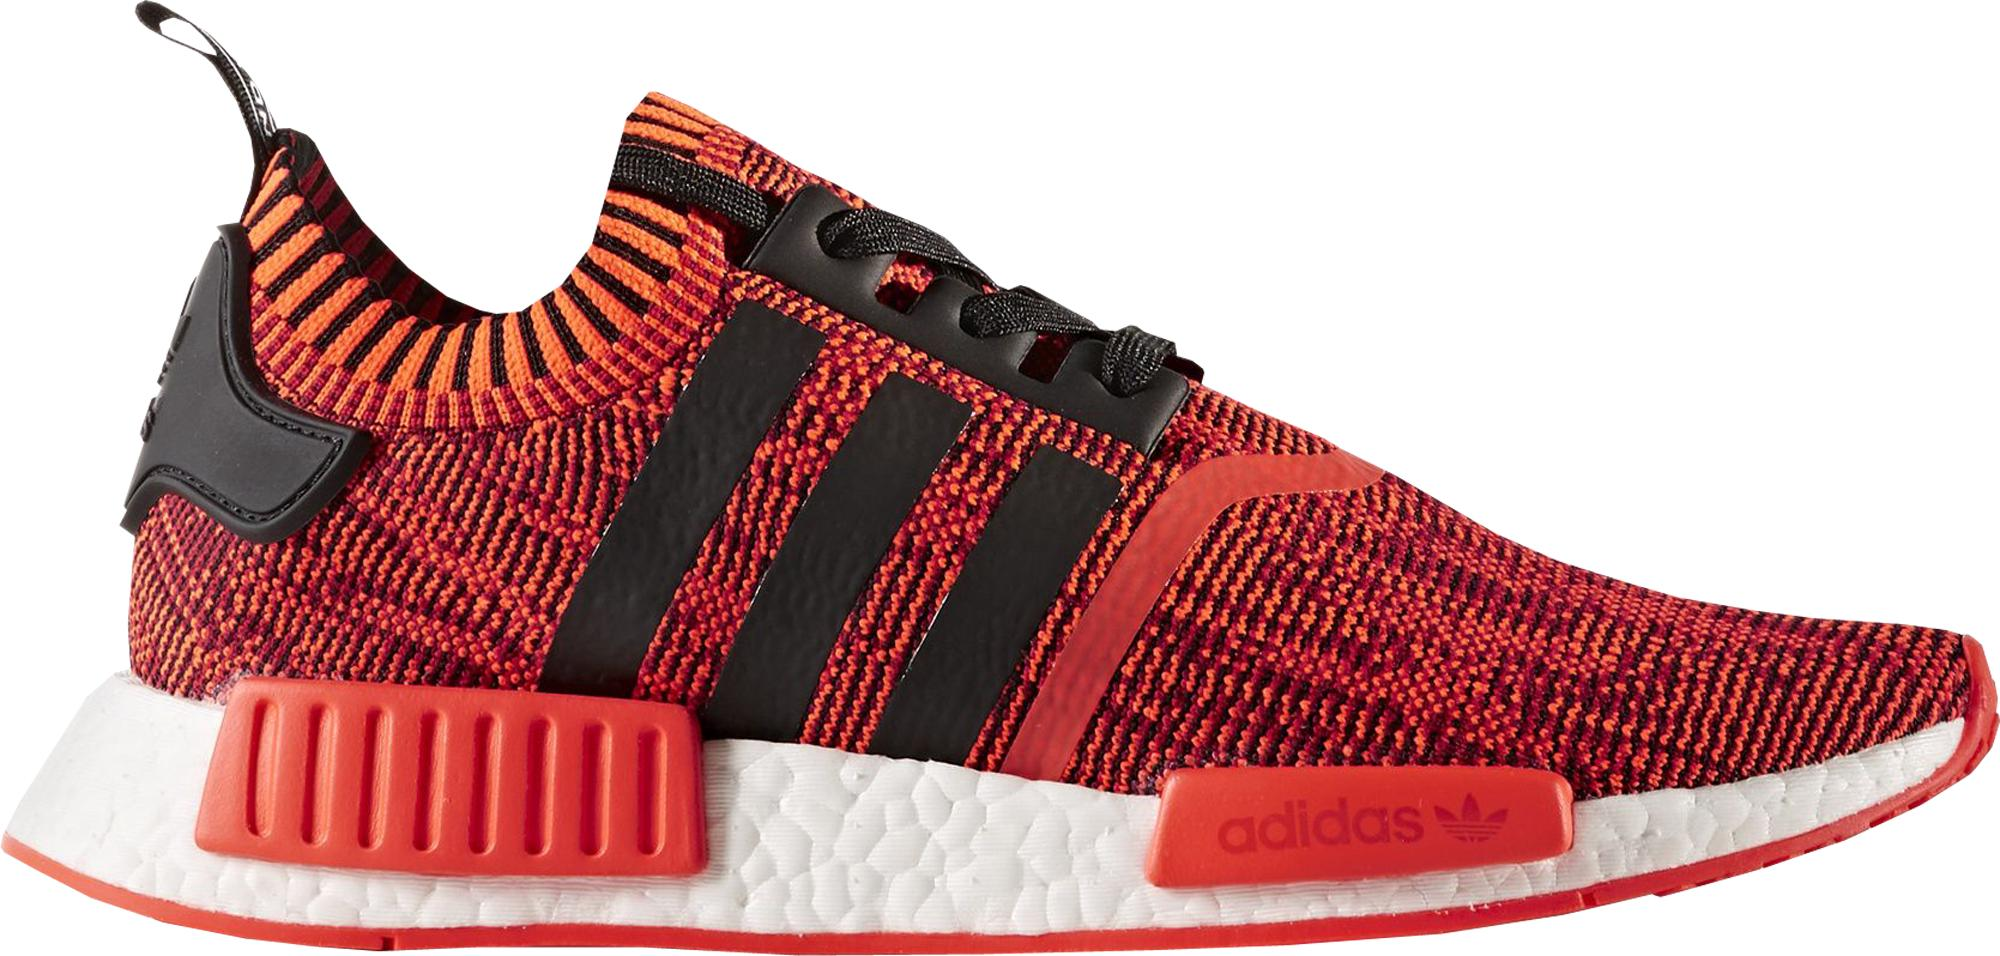 premium selection 44898 6010b Men's Nmd R1 Ai Camo Red Apple 2.0